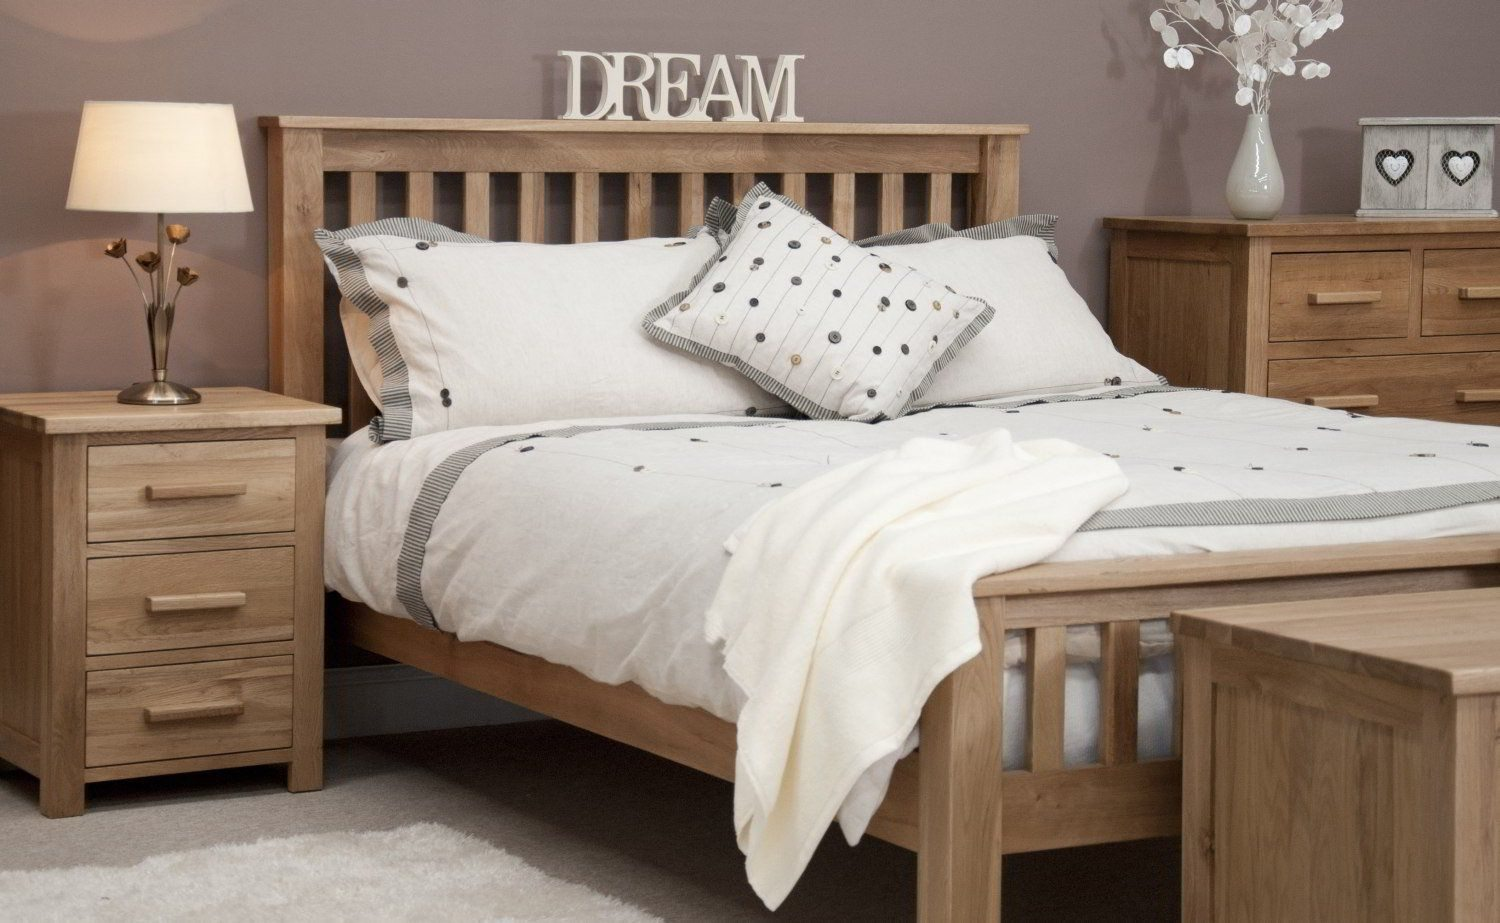 Collection solid oak bedroom furniture bedroom with grey walls and solid oak furniture also white bedding xohgnwf